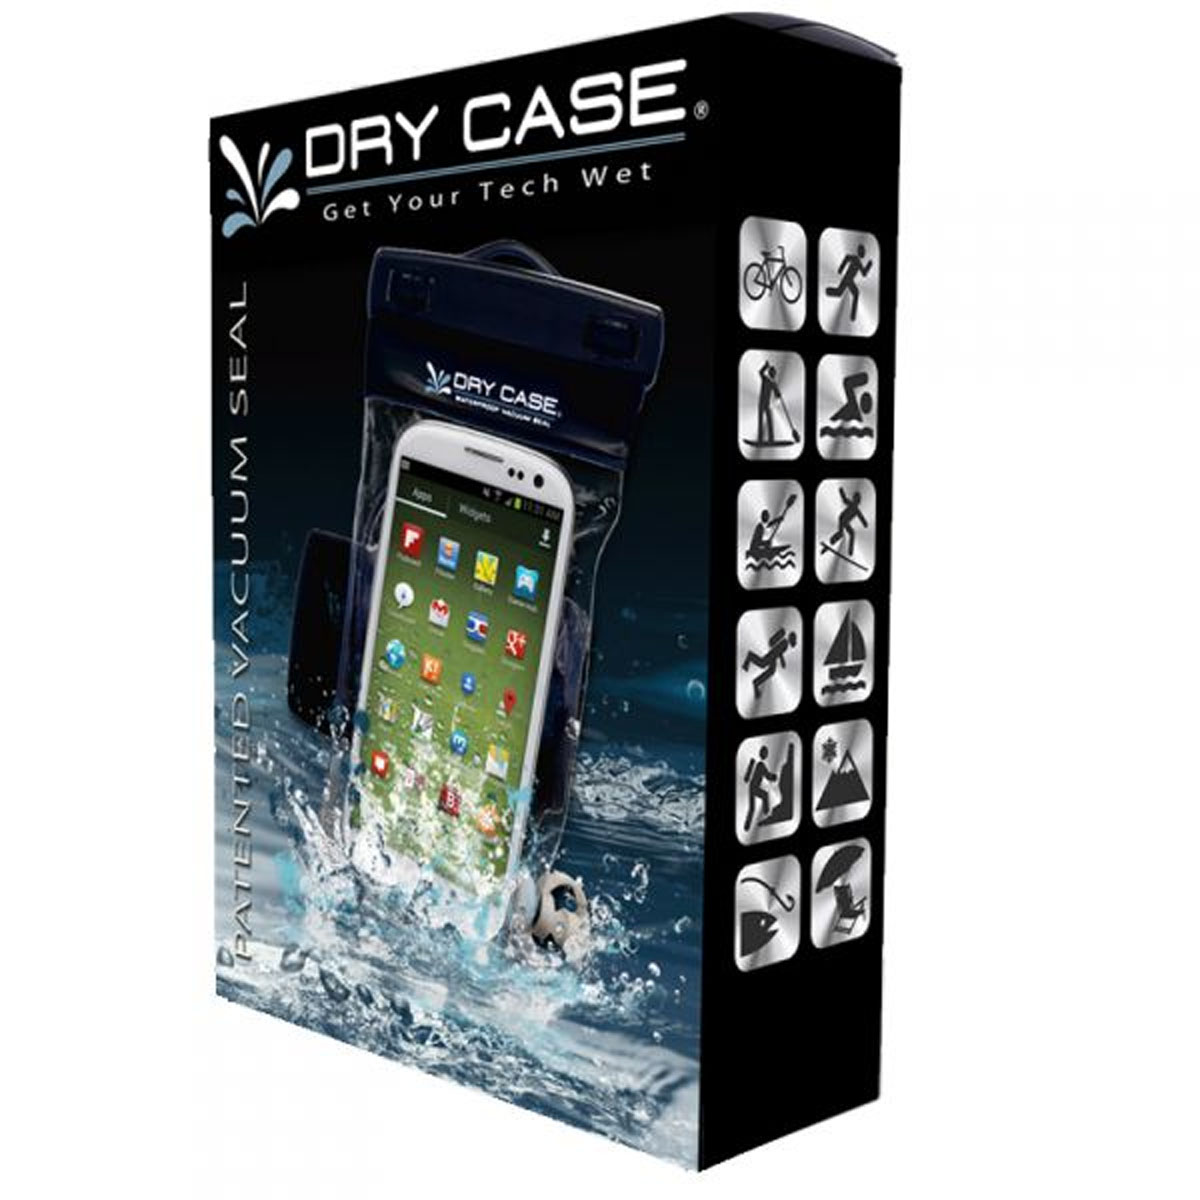 DRY CASE DC-13 WATERPROOF CASE FOR IPHONE, IPOD, SMARTPHONE